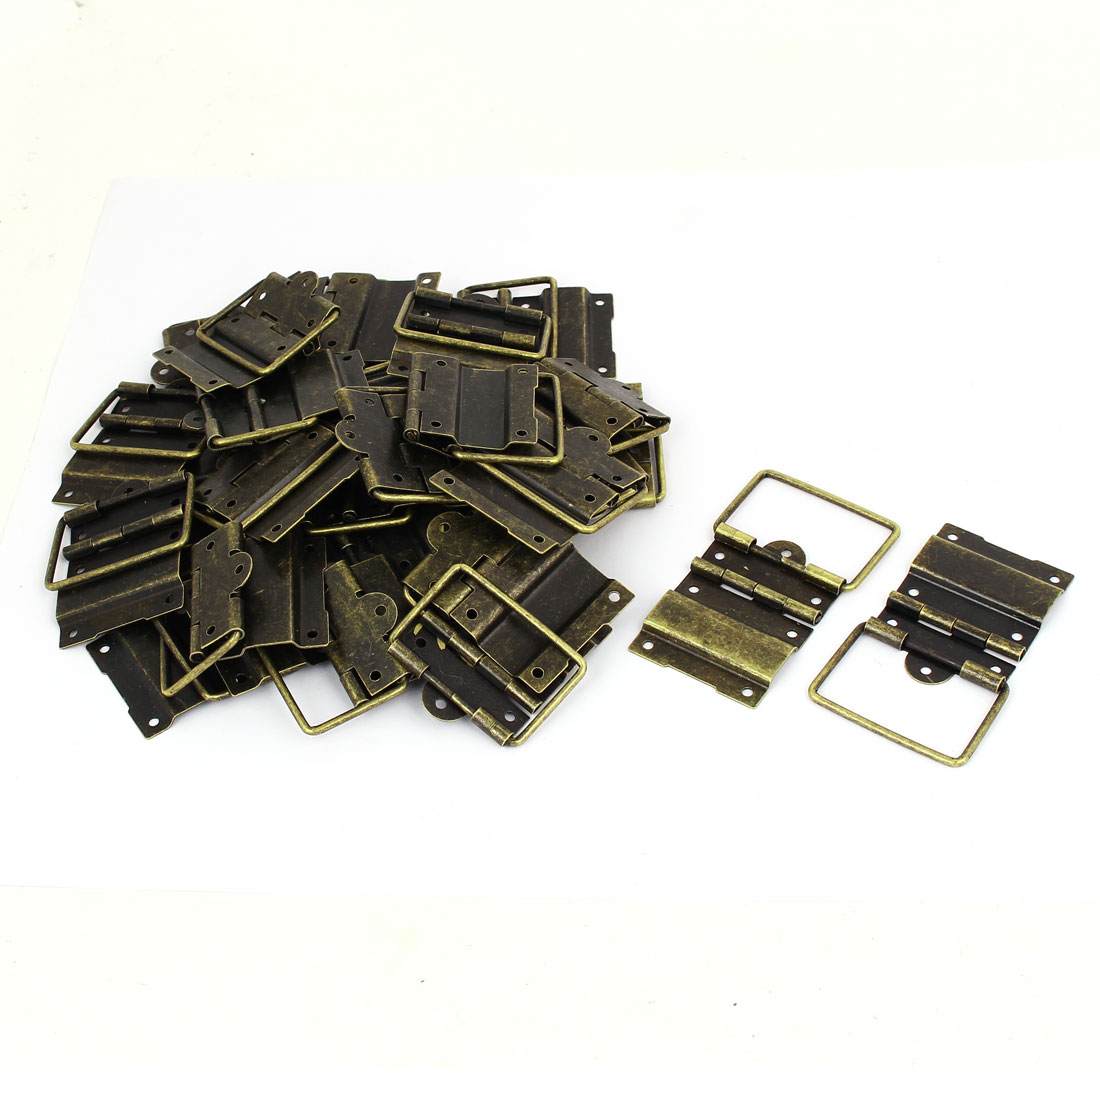 Box Case Retro Style Positioning Support Hinges Bronze Tone 57mmx41mm 30pcs